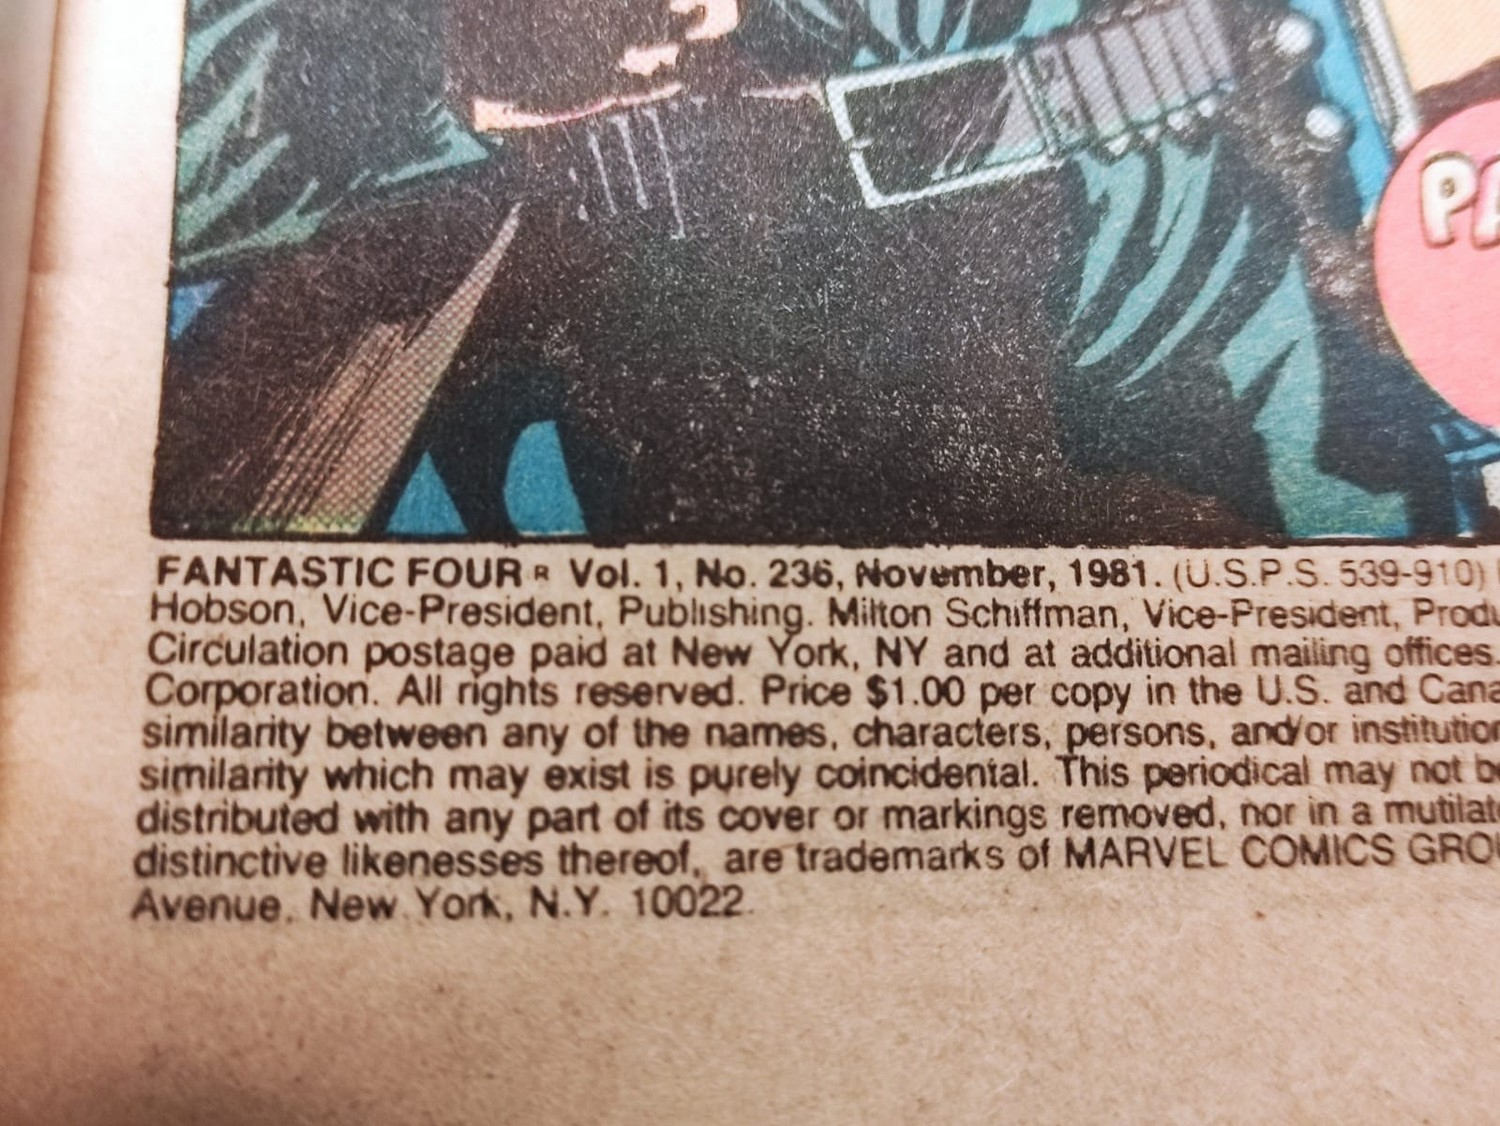 30x Marvel Fantastic four mid 1970s editions. Used, in good condition. - Image 17 of 17